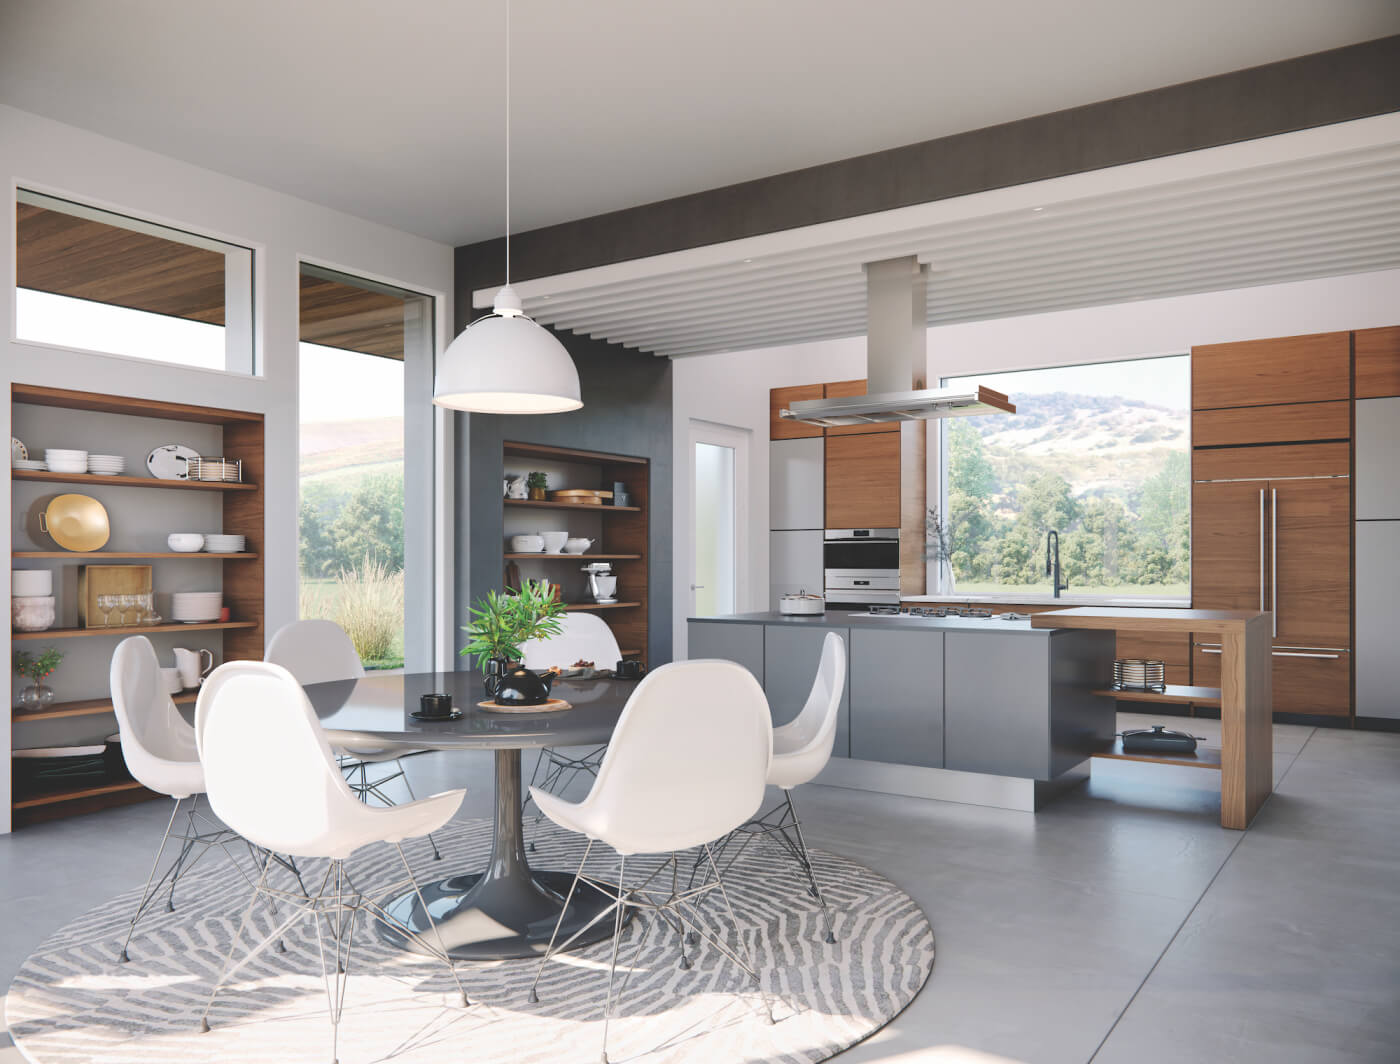 Interior Kitchen with Modern Direct Glaze Windows